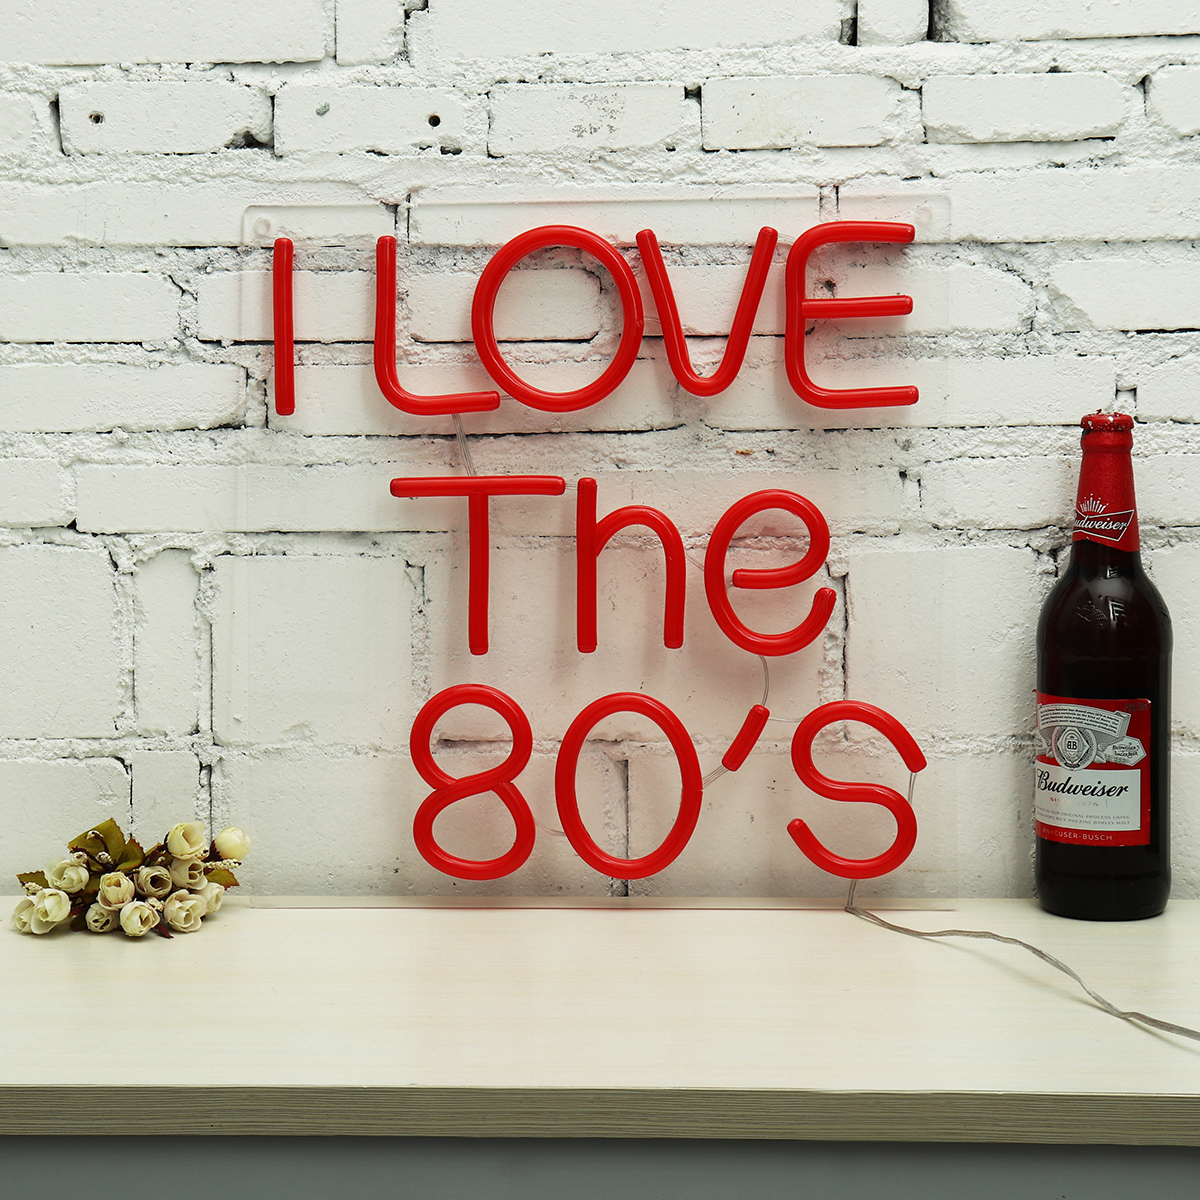 US $103 46 46% OFF|I Love The 80'S Neon Sign LED Lighting Tube Night Lamp  Handmade Visual Artwork Bar Club Wall Light Decoration Red 40x40cm-in Neon